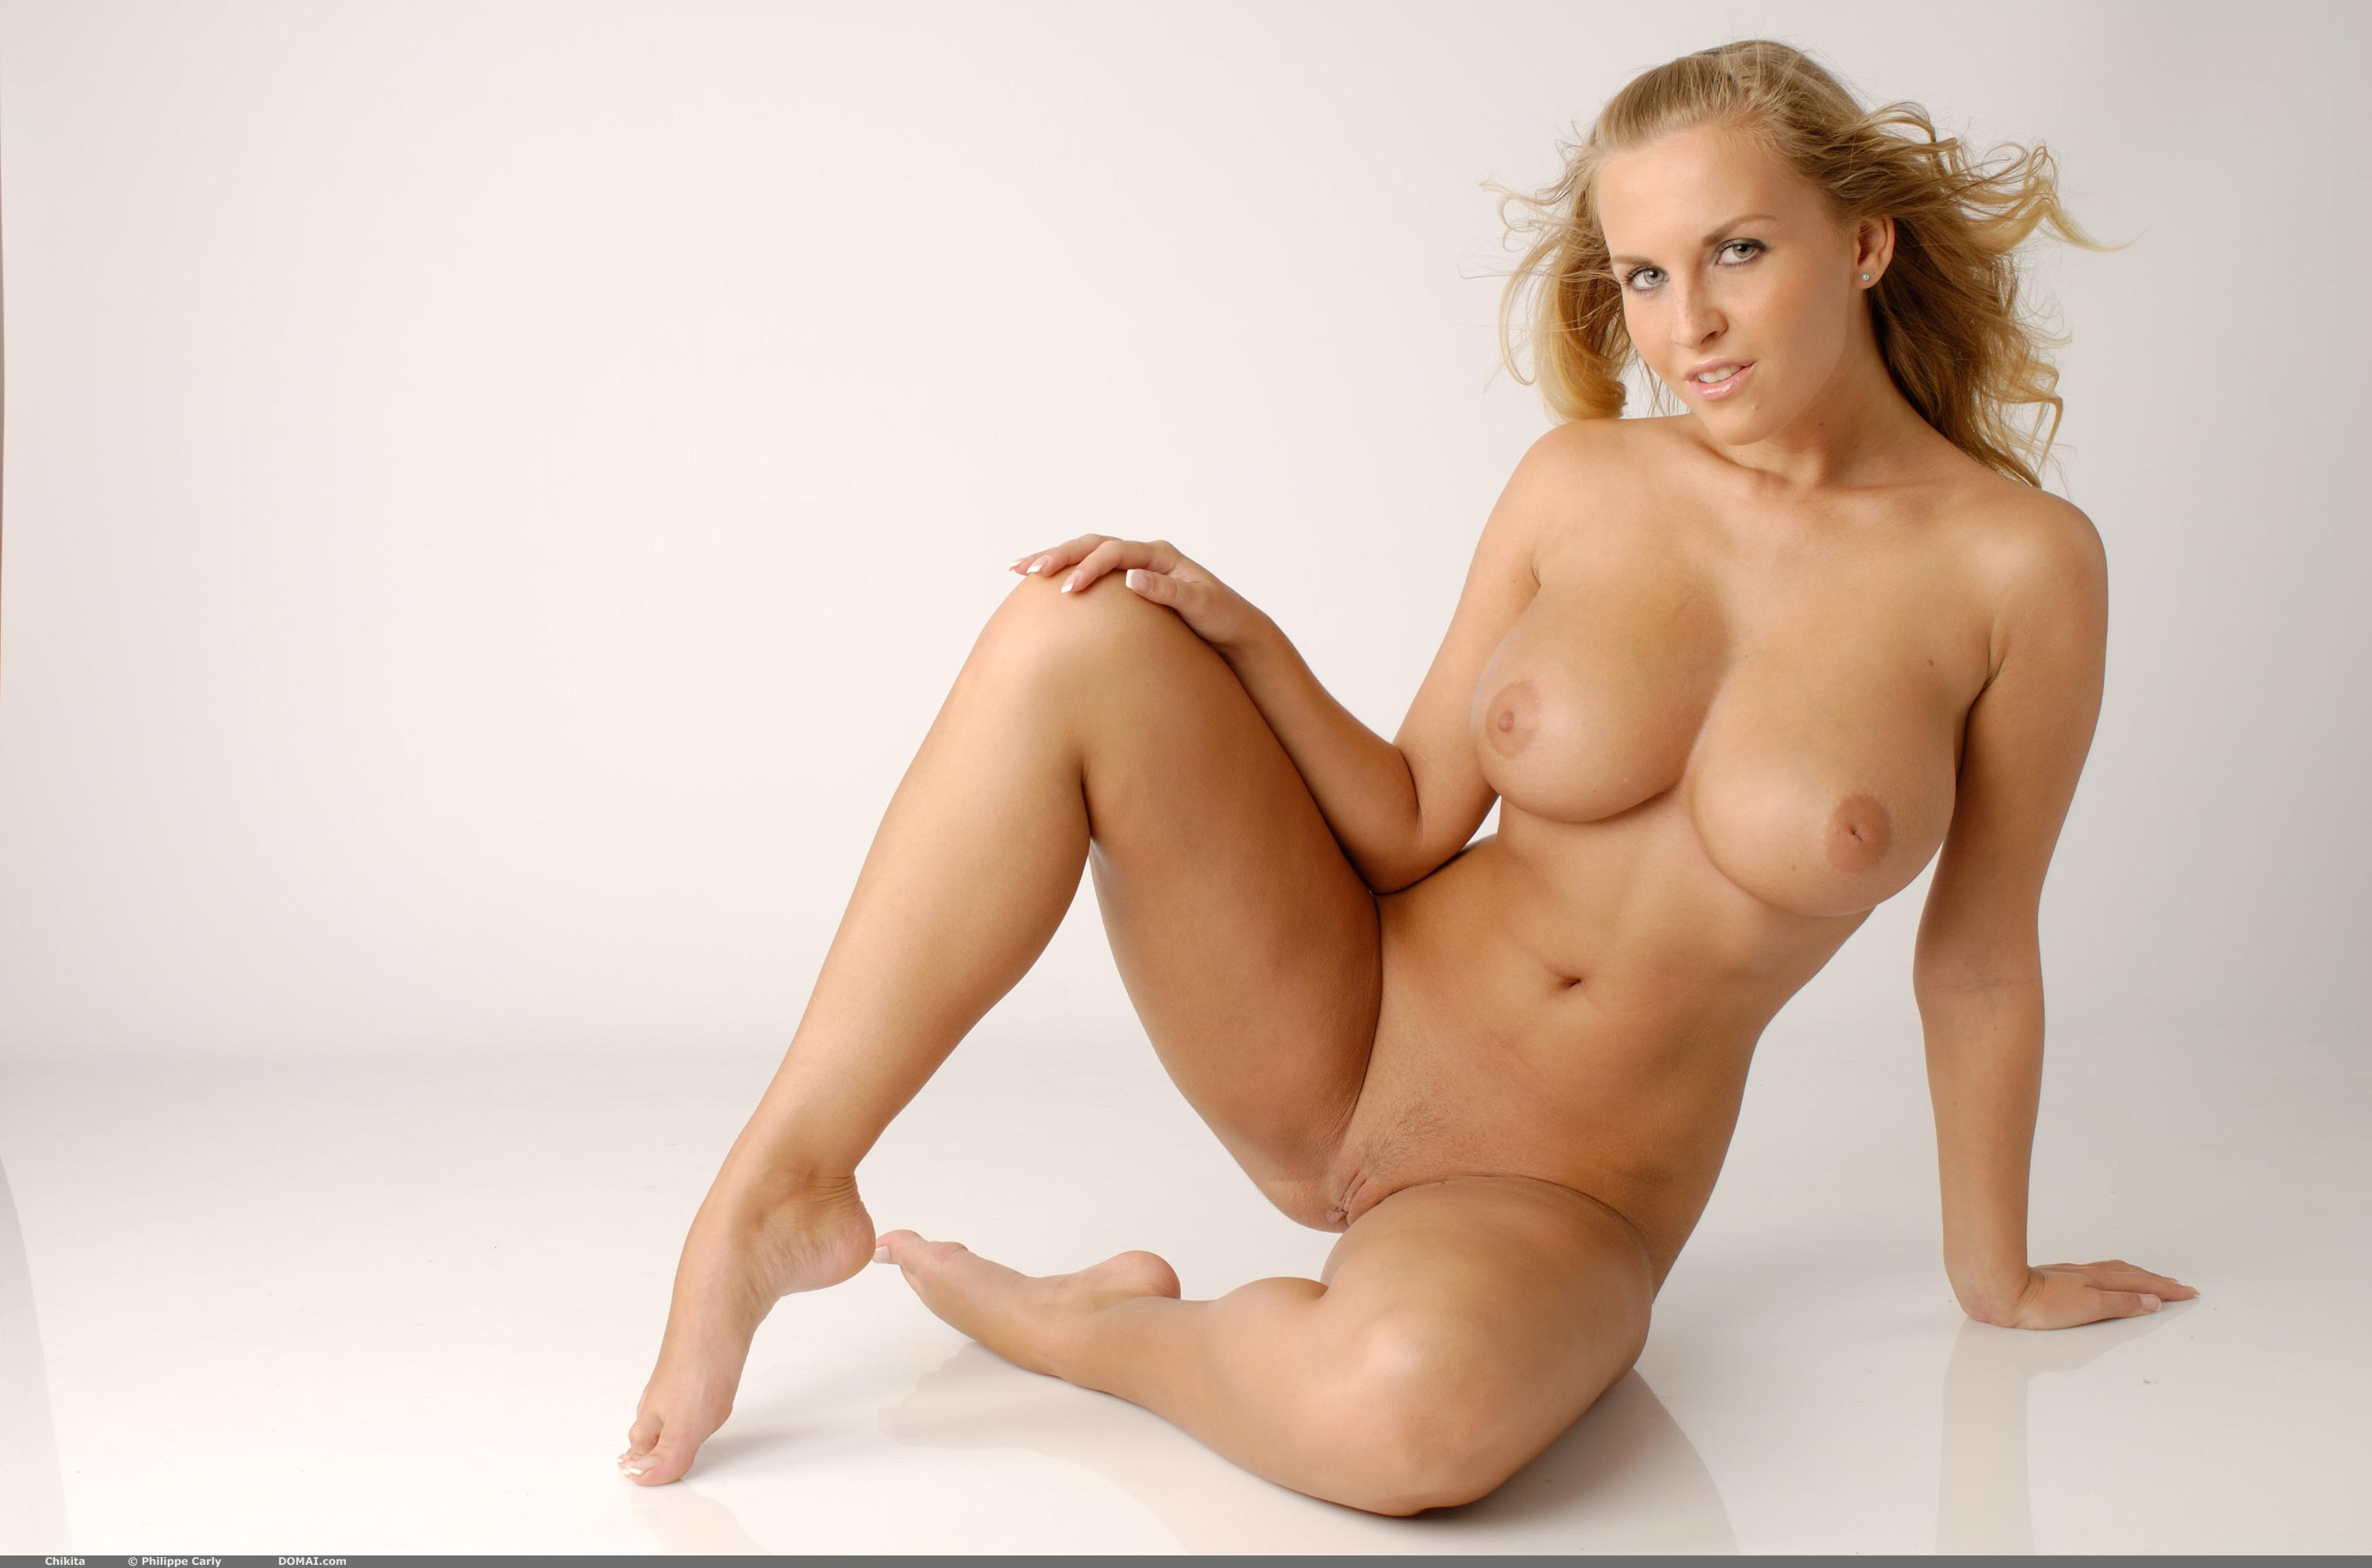 Weman Nude Video 90